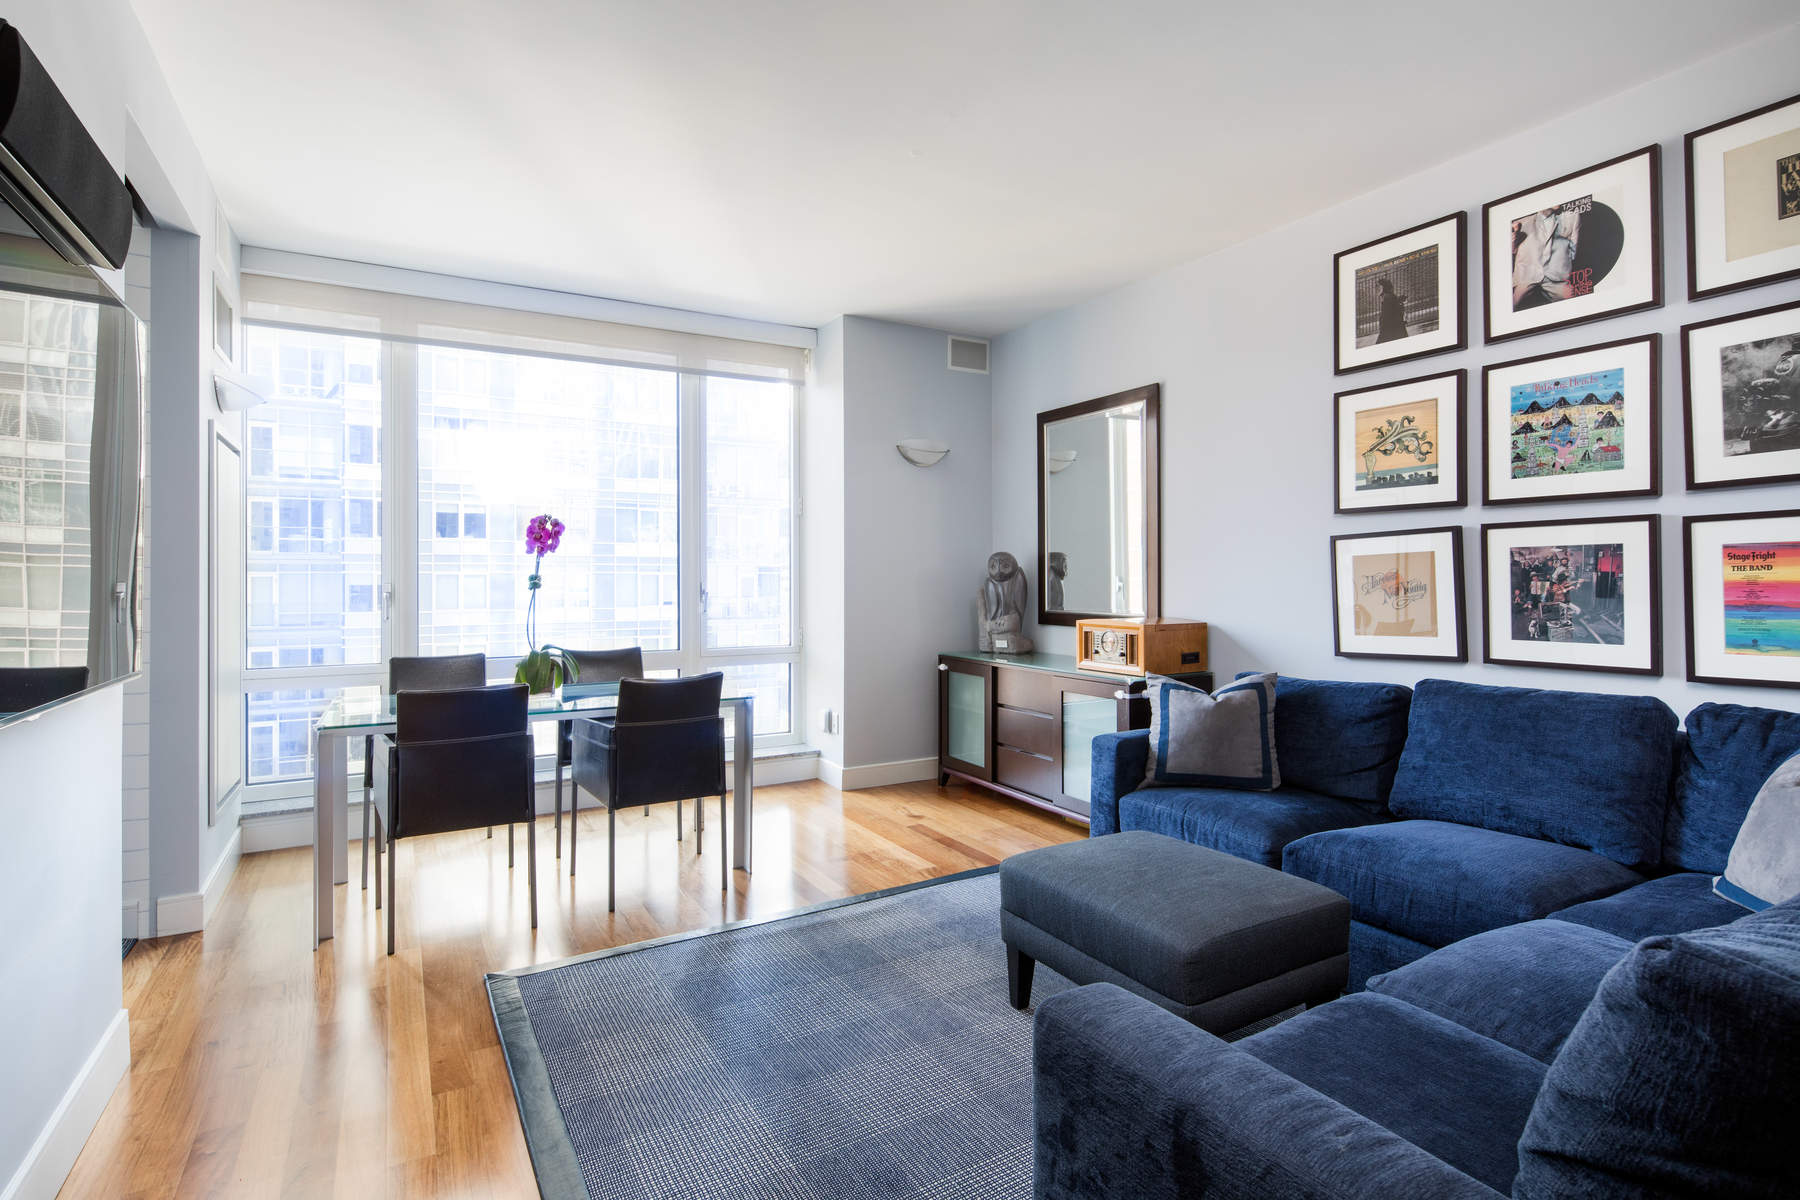 Condominium for Sale at 250 East 53rd Street Apt 1603 Midtown East, New York, New York, 10022 United States